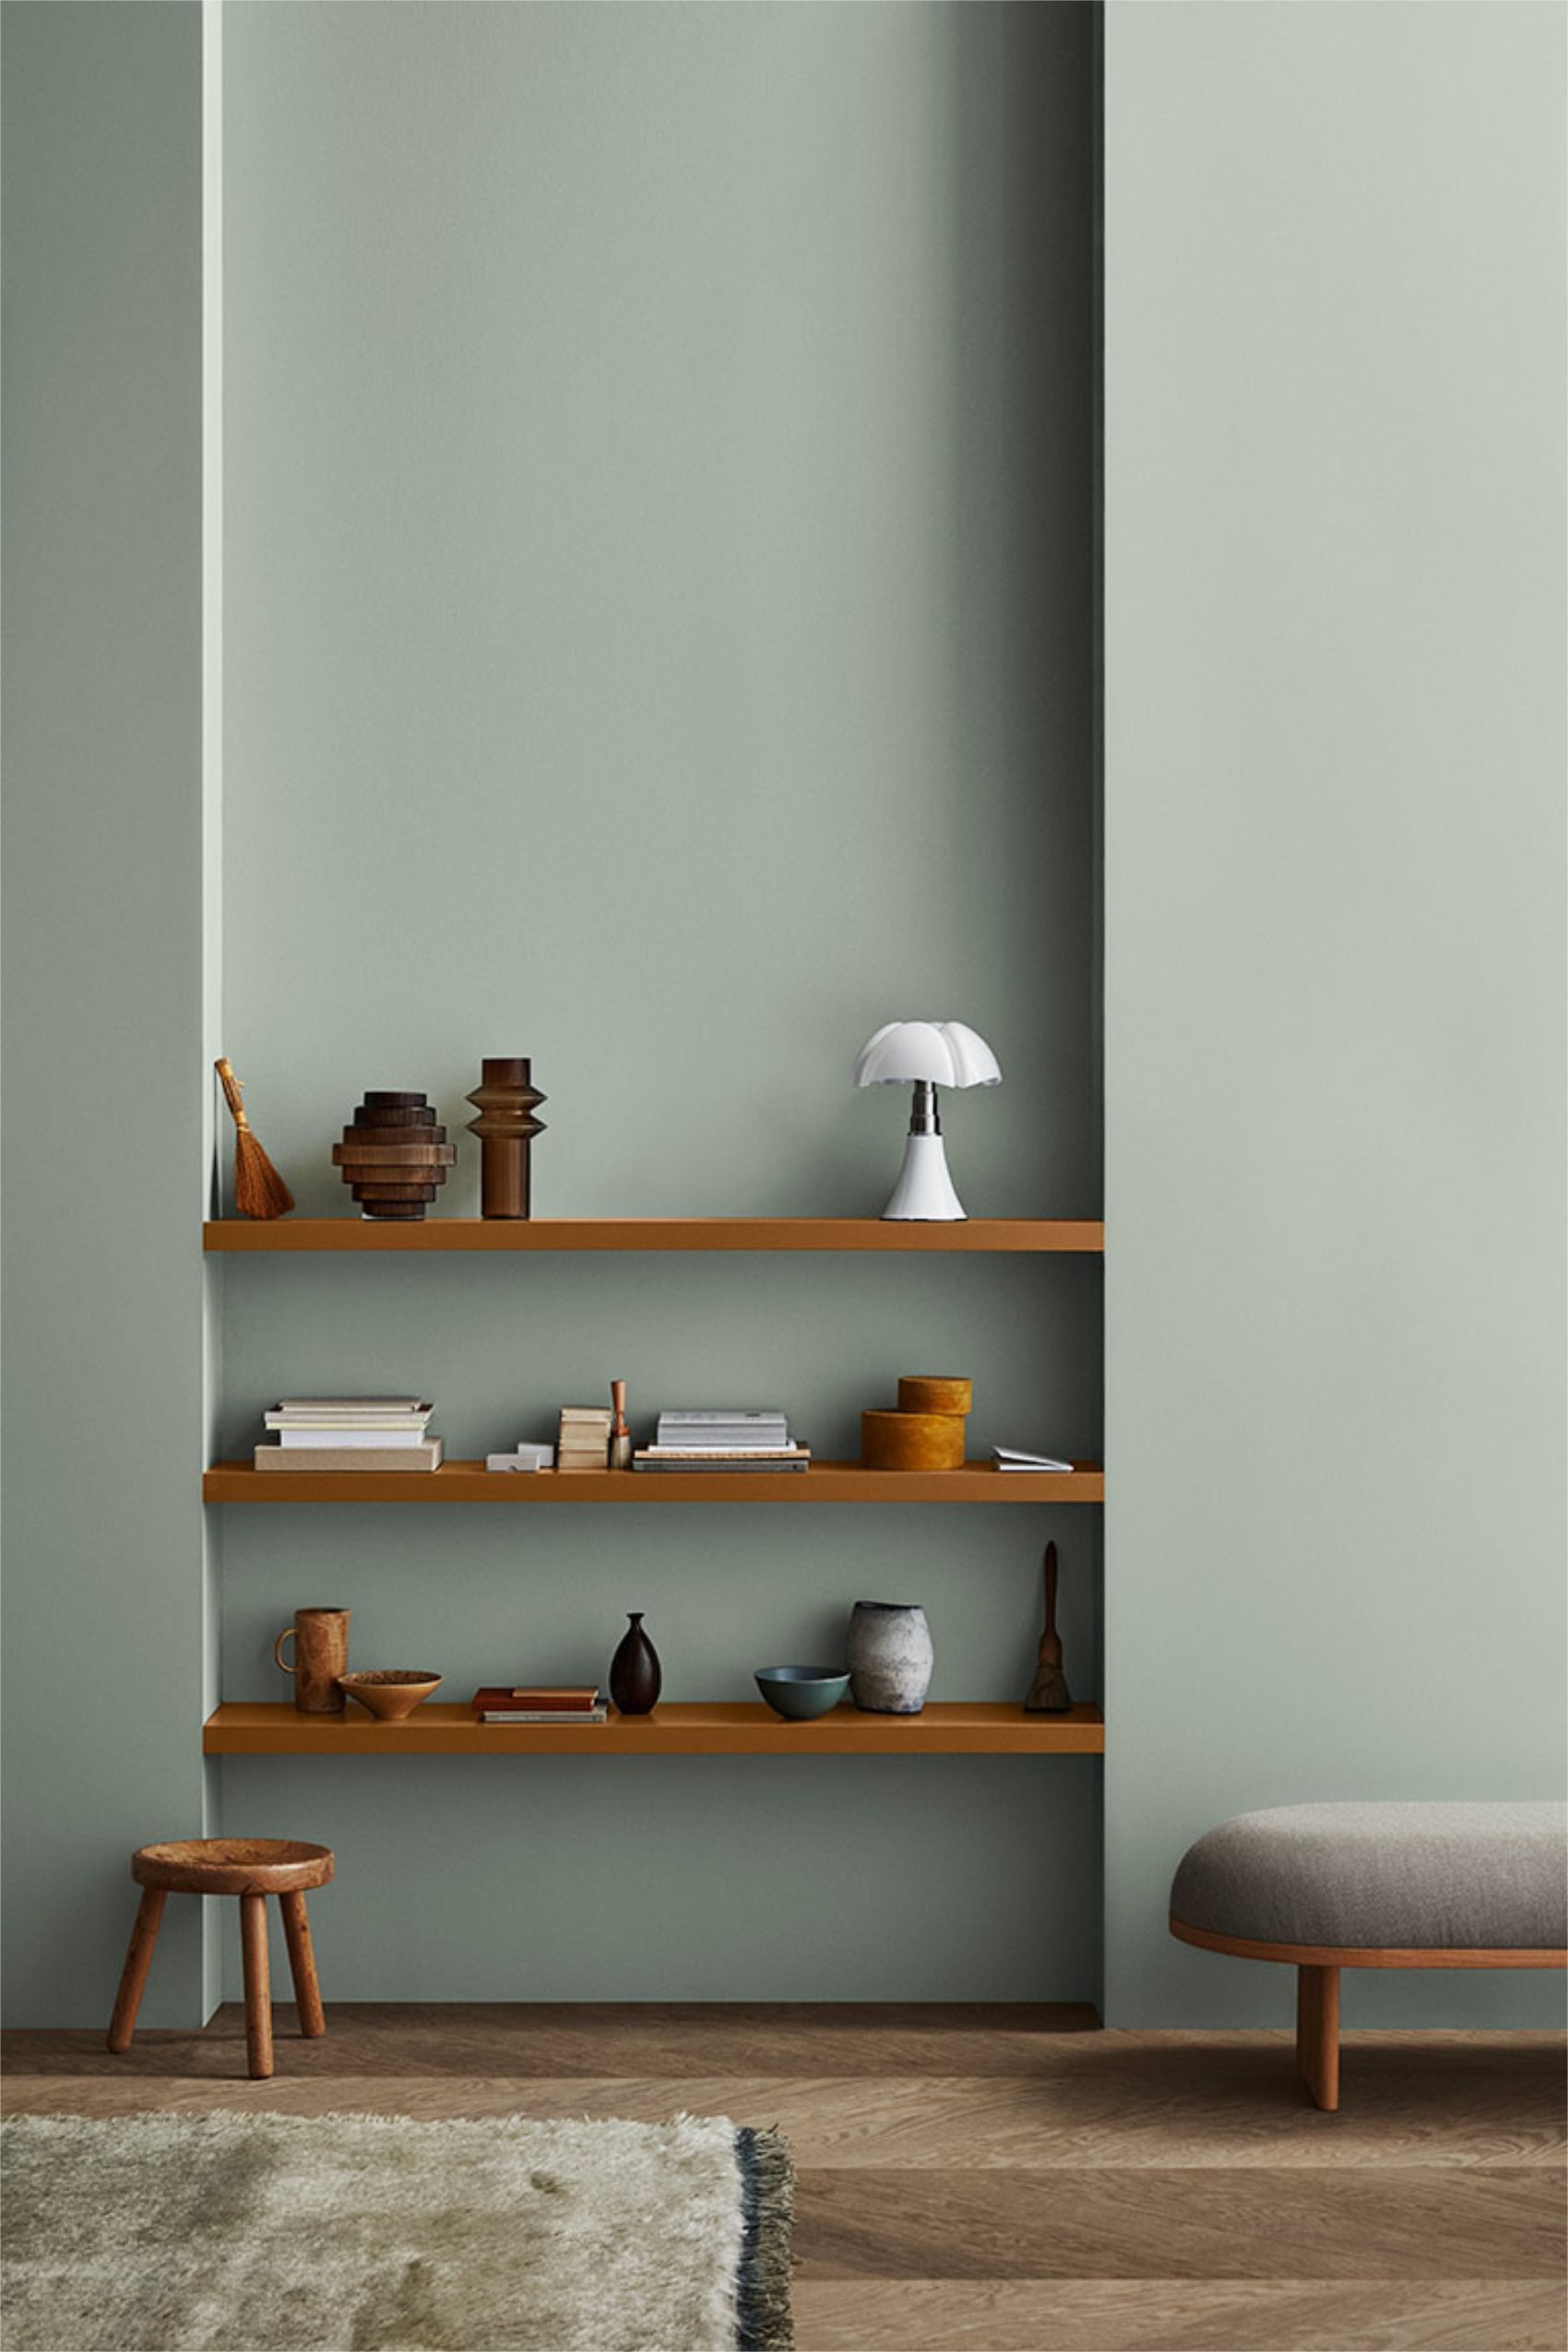 THE SCANDINAVIAN INTERIOR COLOUR TRENDS OF 2020 FROM JOTUN LADY | thatscandinavianfeeling.com